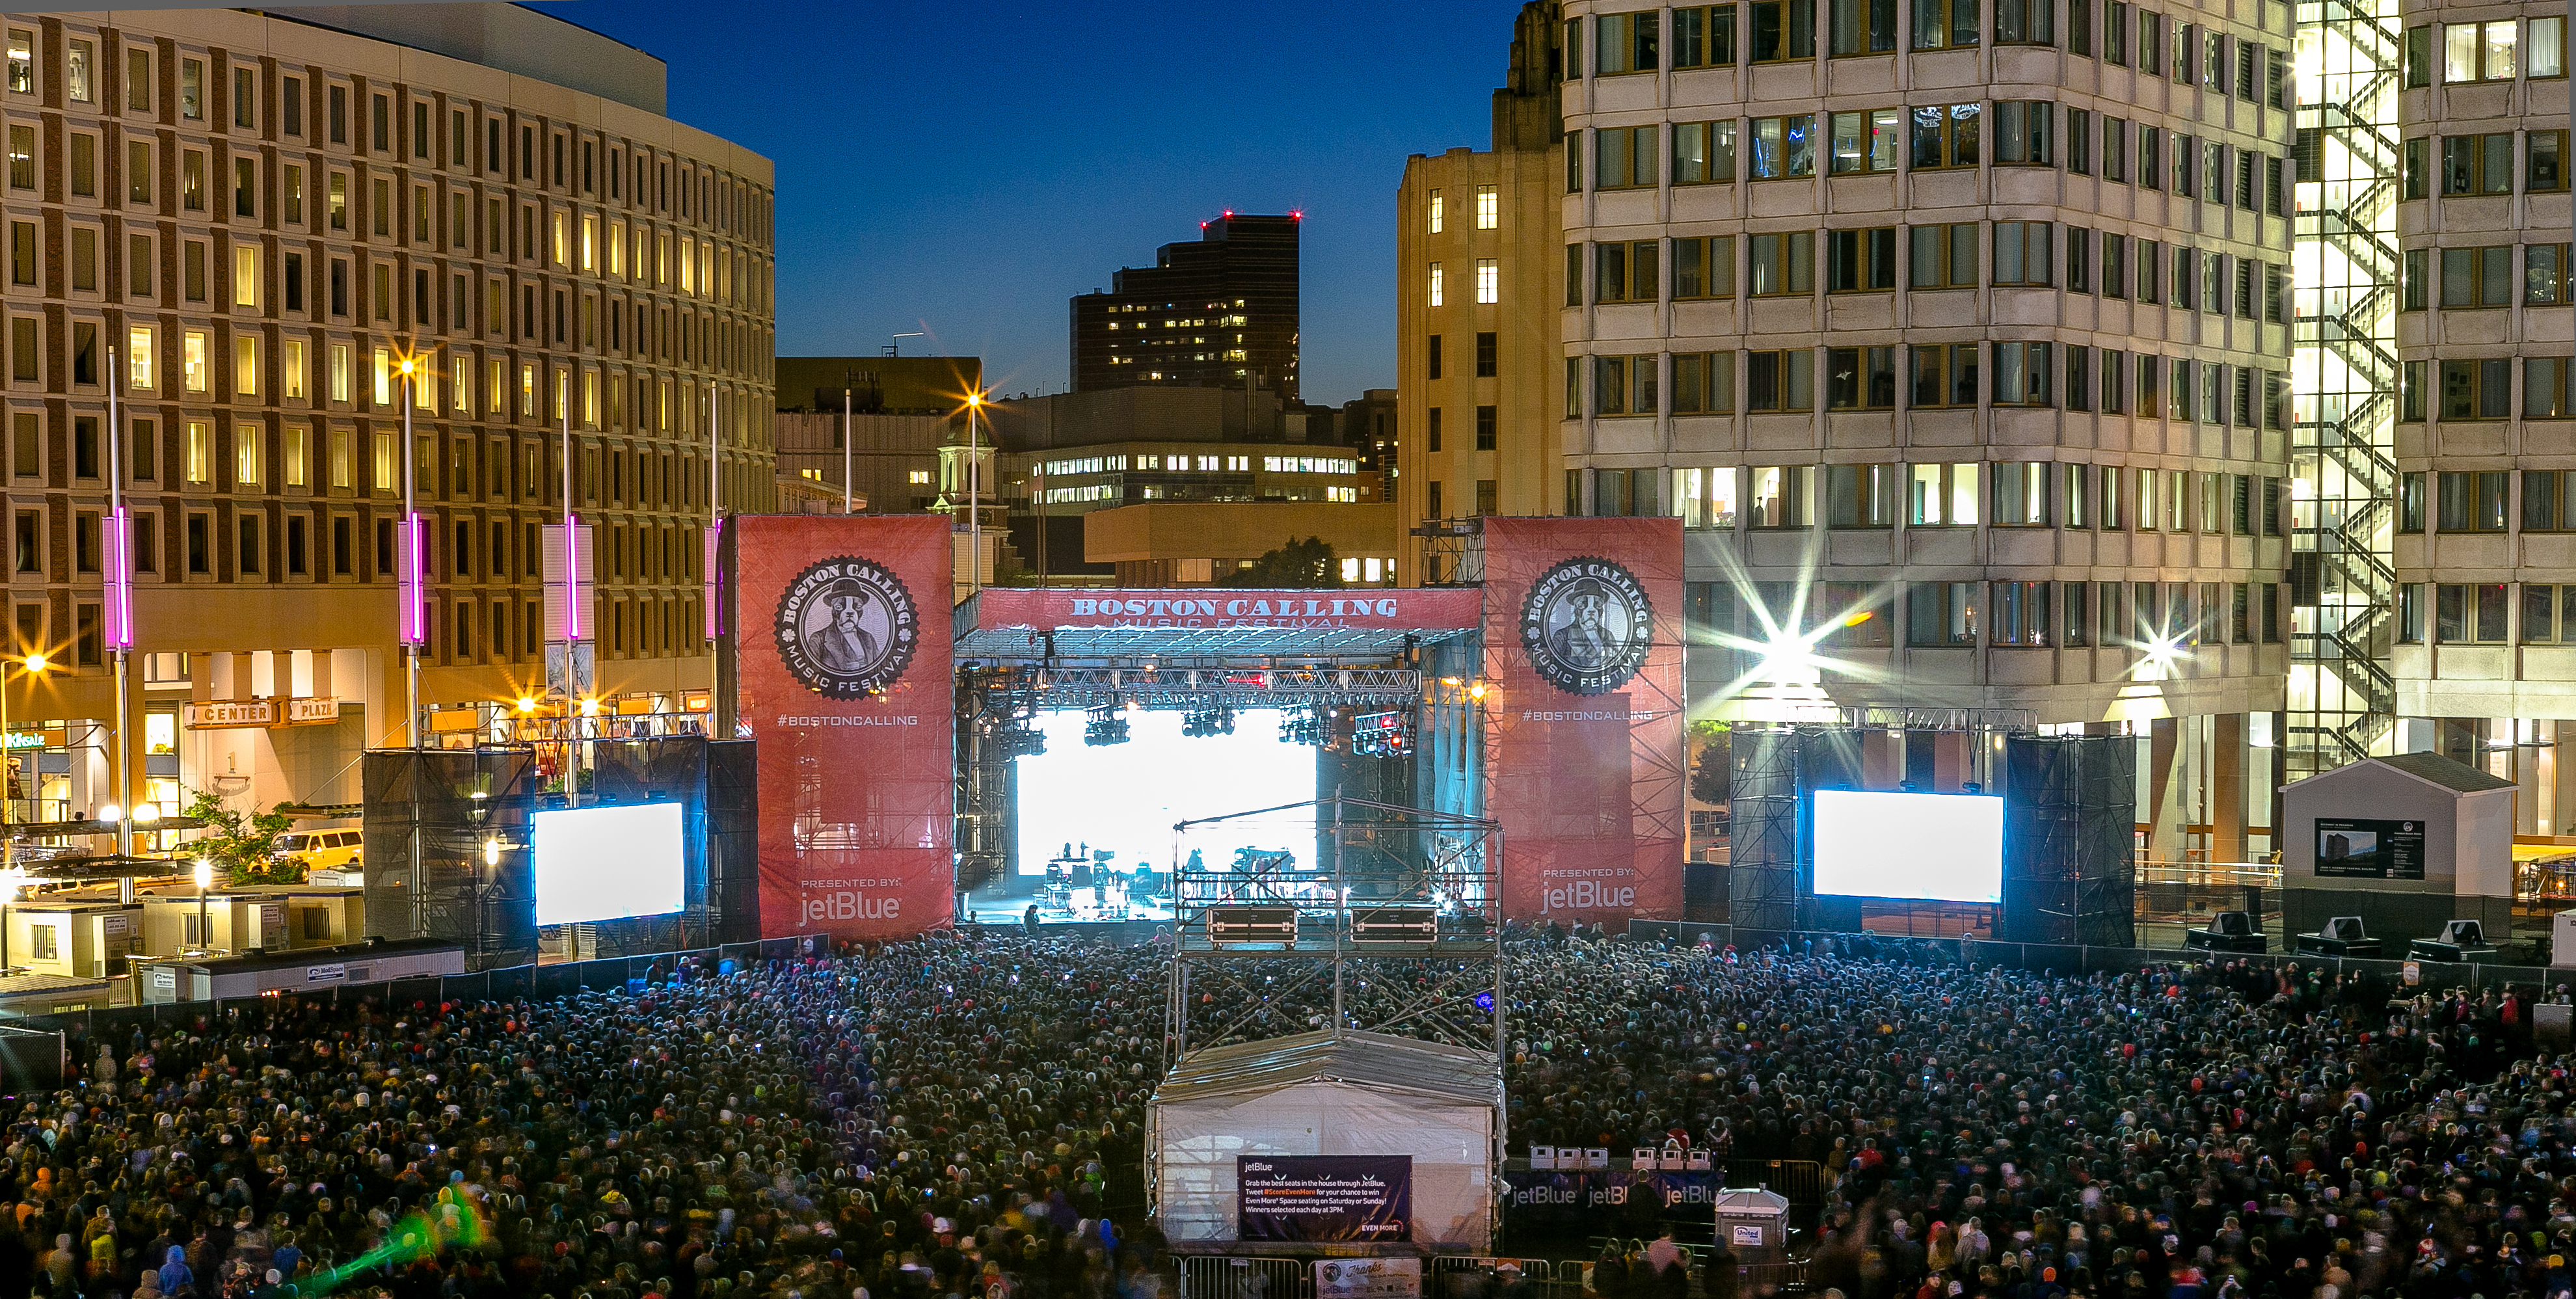 Boston Calling Huffington Post 2013